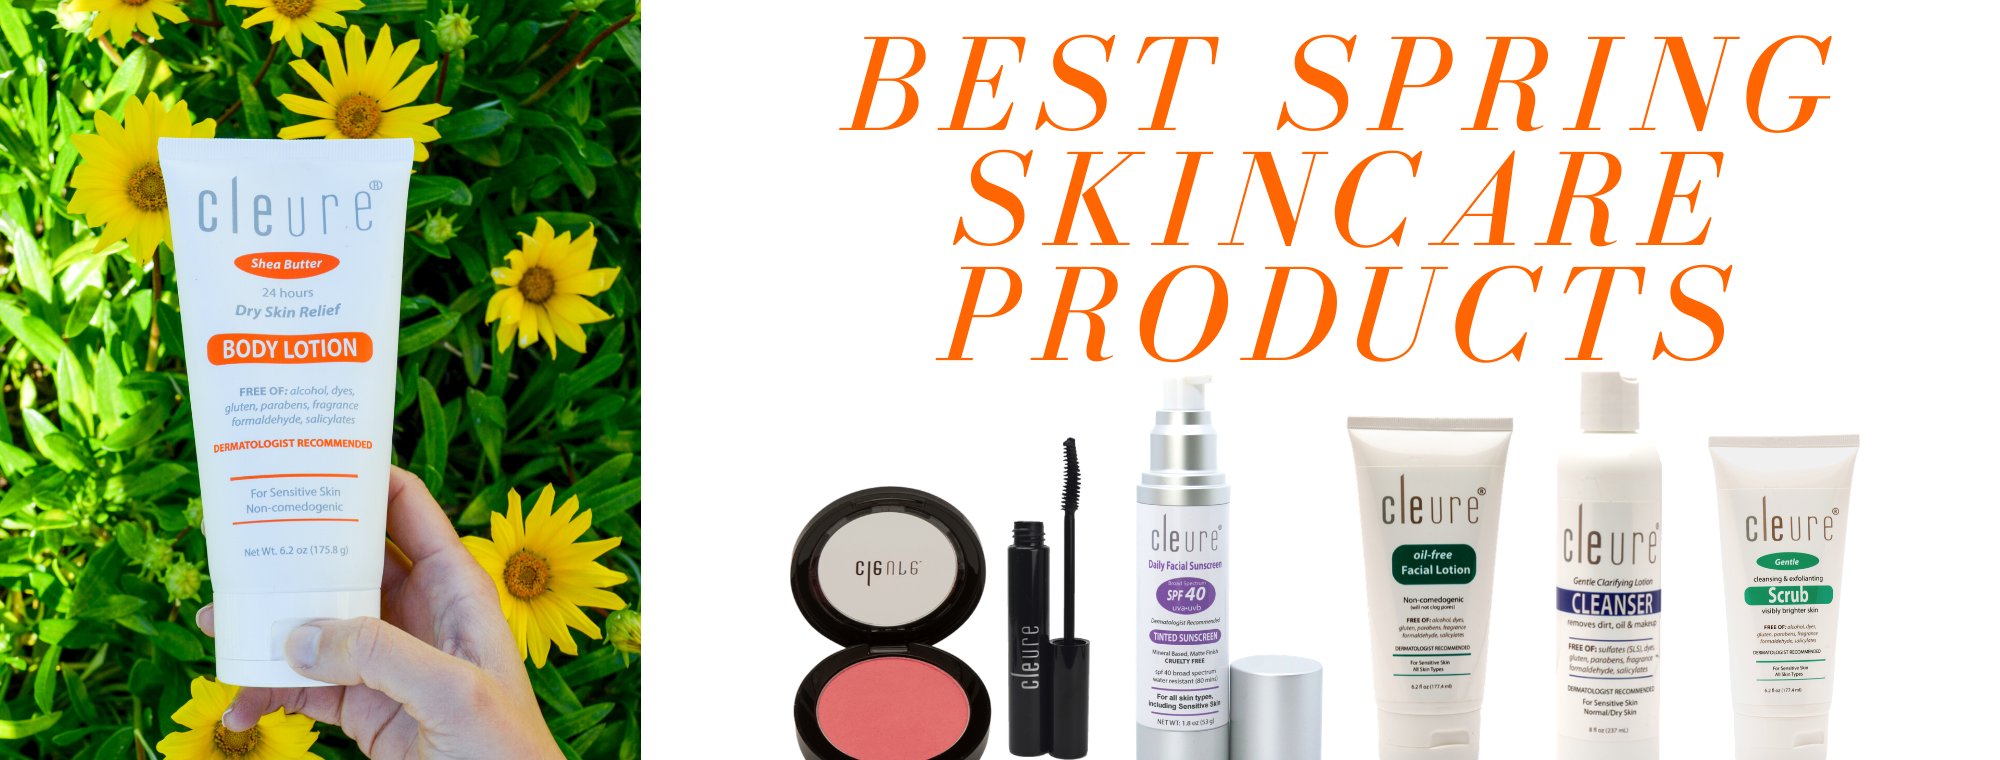 best spring skincare products